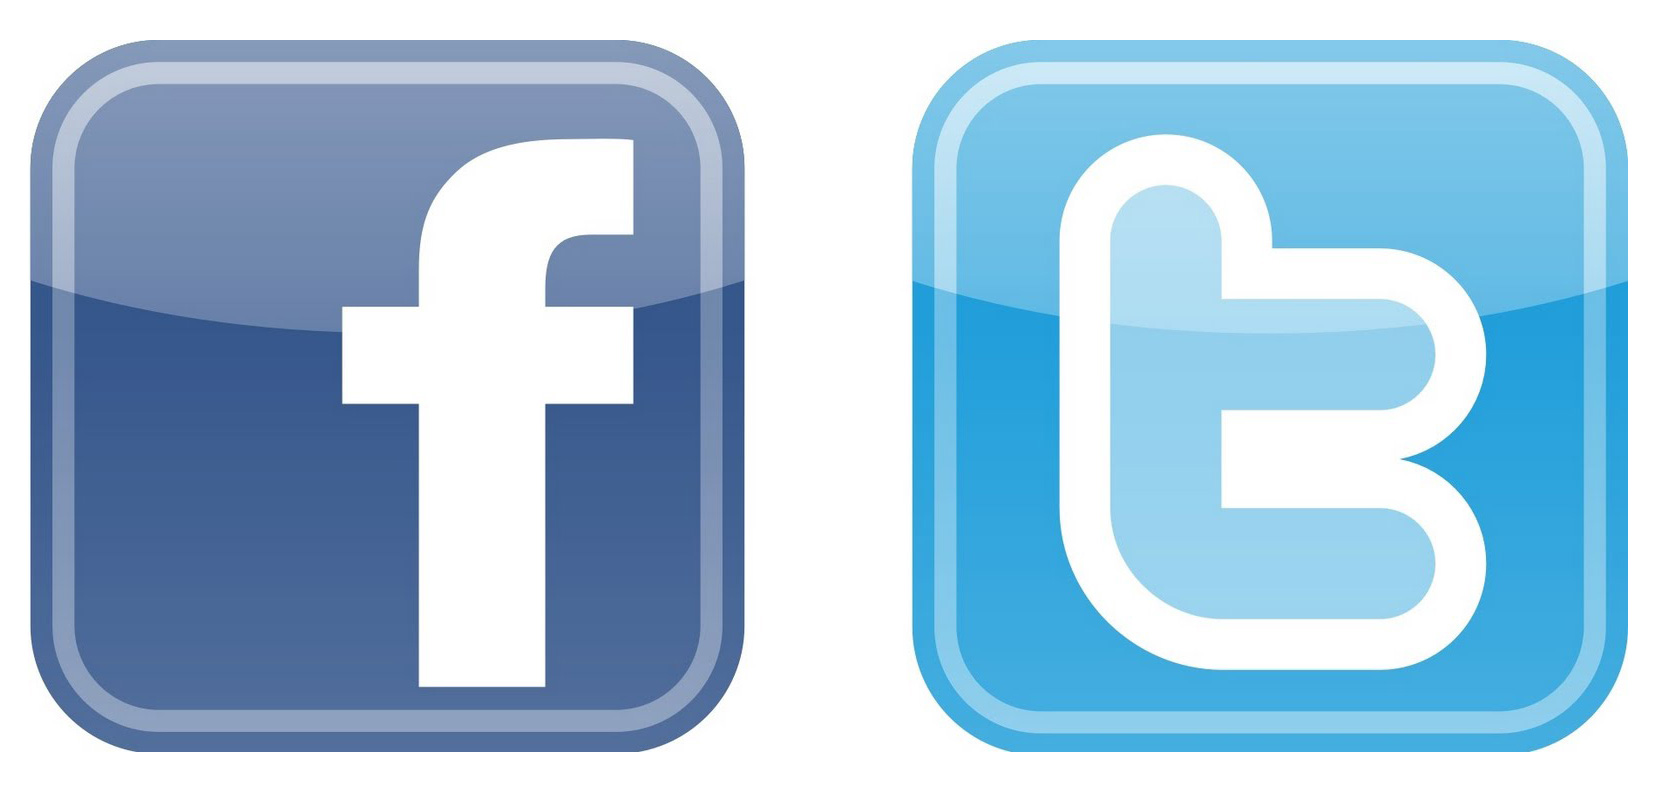 Facebook twitter icon clipart picture freeuse stock Facebook And Twitter Logo - ClipArt Best picture freeuse stock